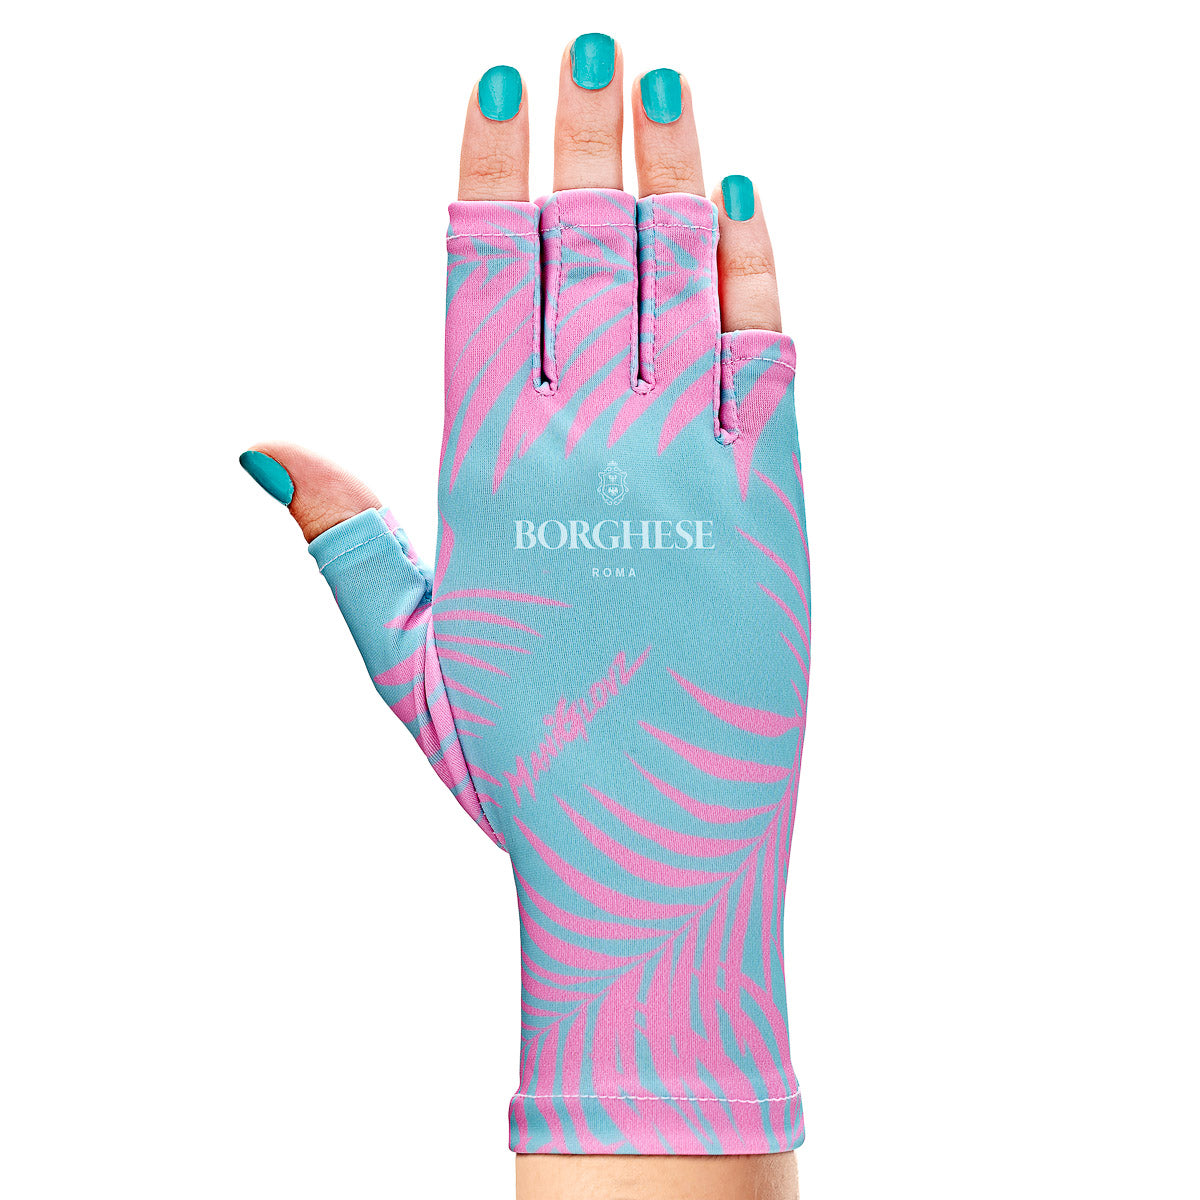 Gel Manicure Anti-UV Fingerless Glove Set